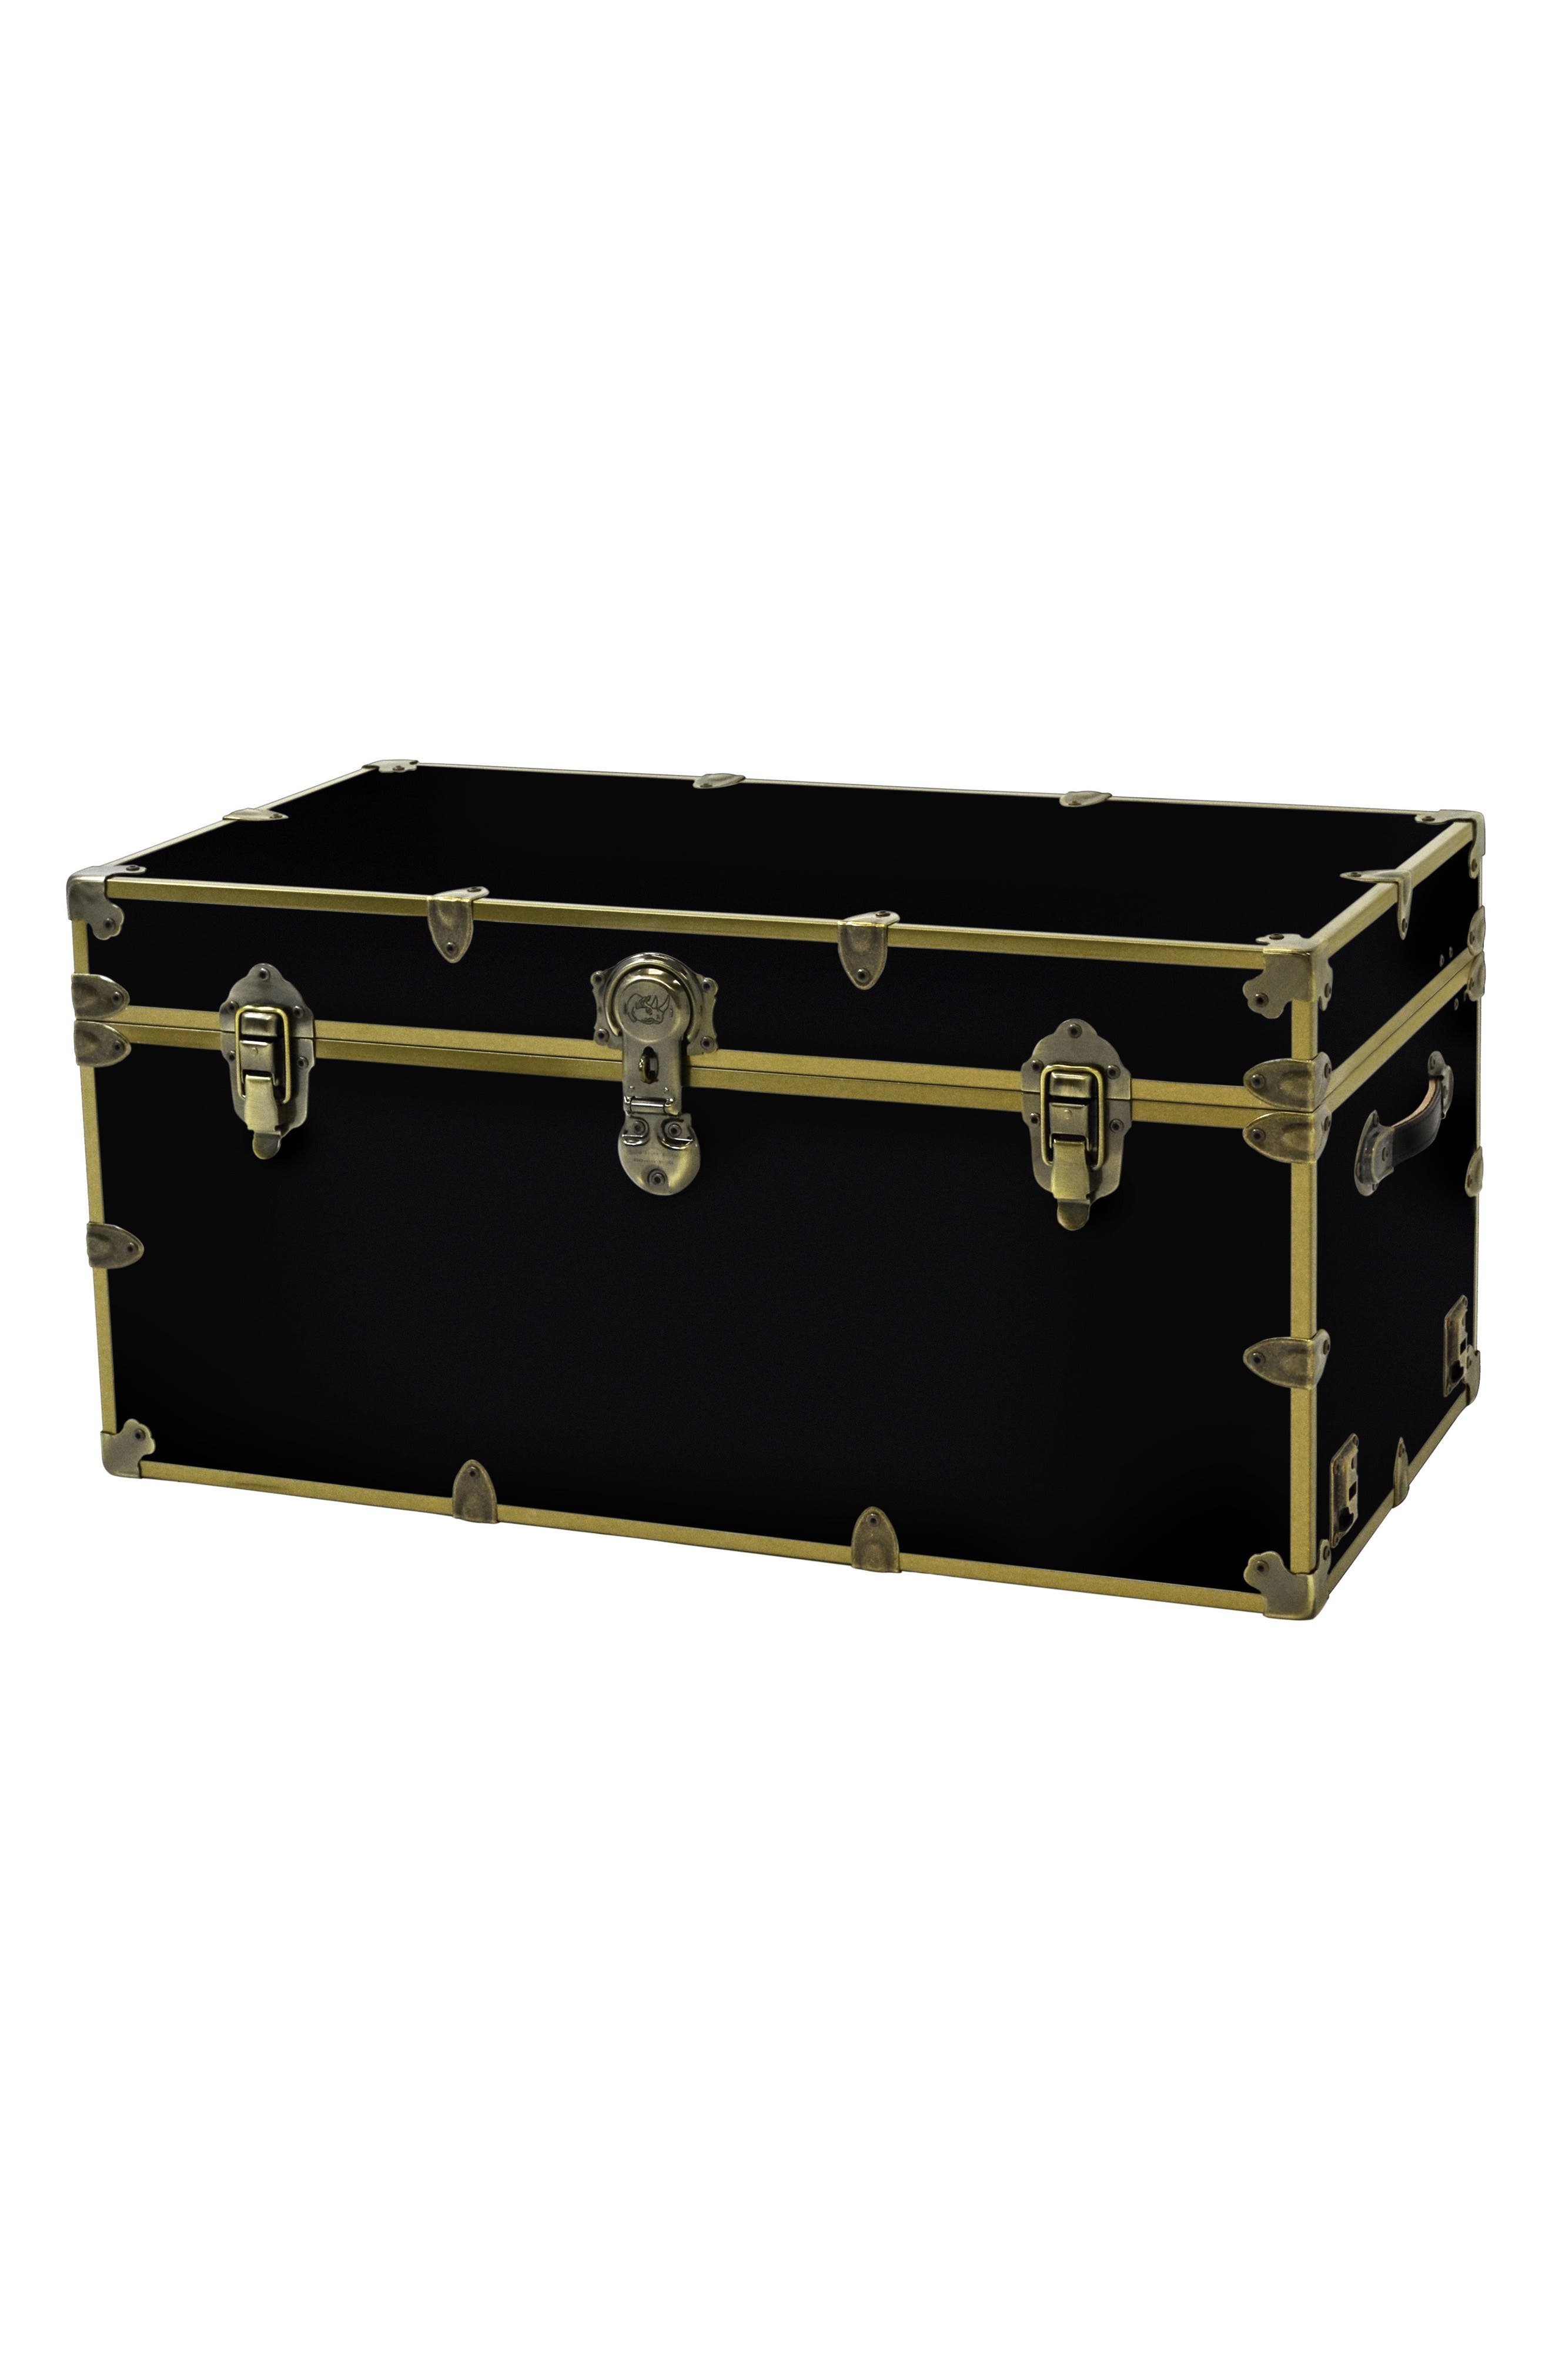 Rhino Trunk  Case Xxl Brass Armor Trunk Size One Size  Black